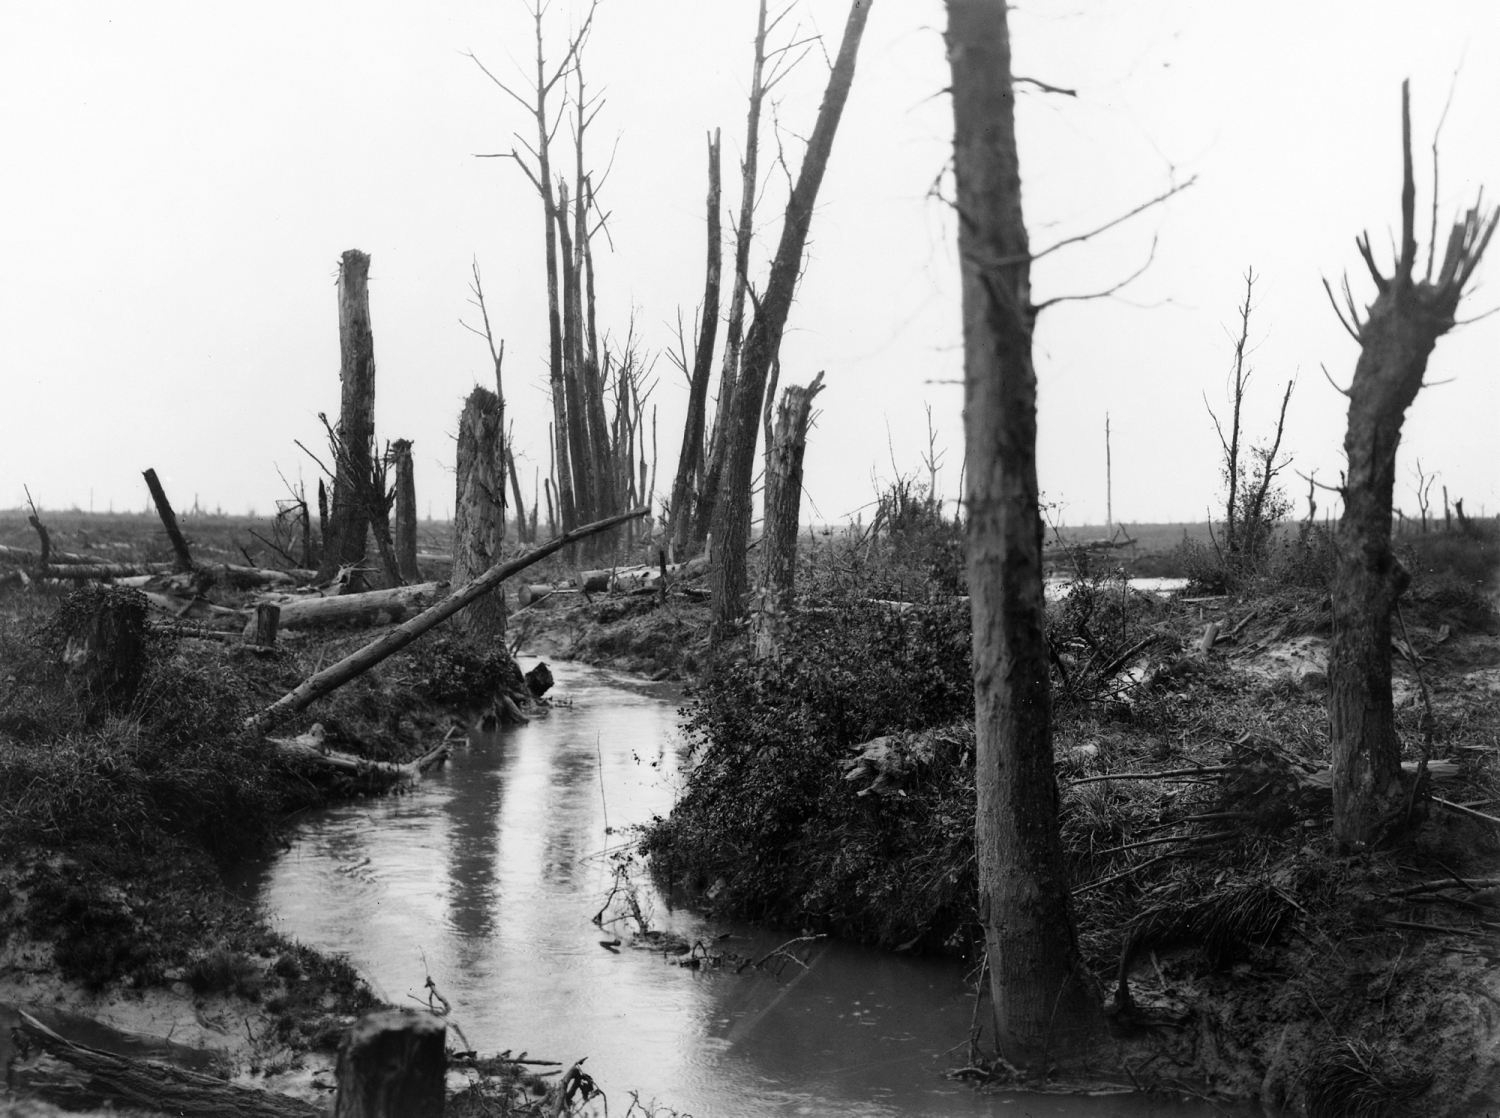 Stark black and white photo of battlefield with river.